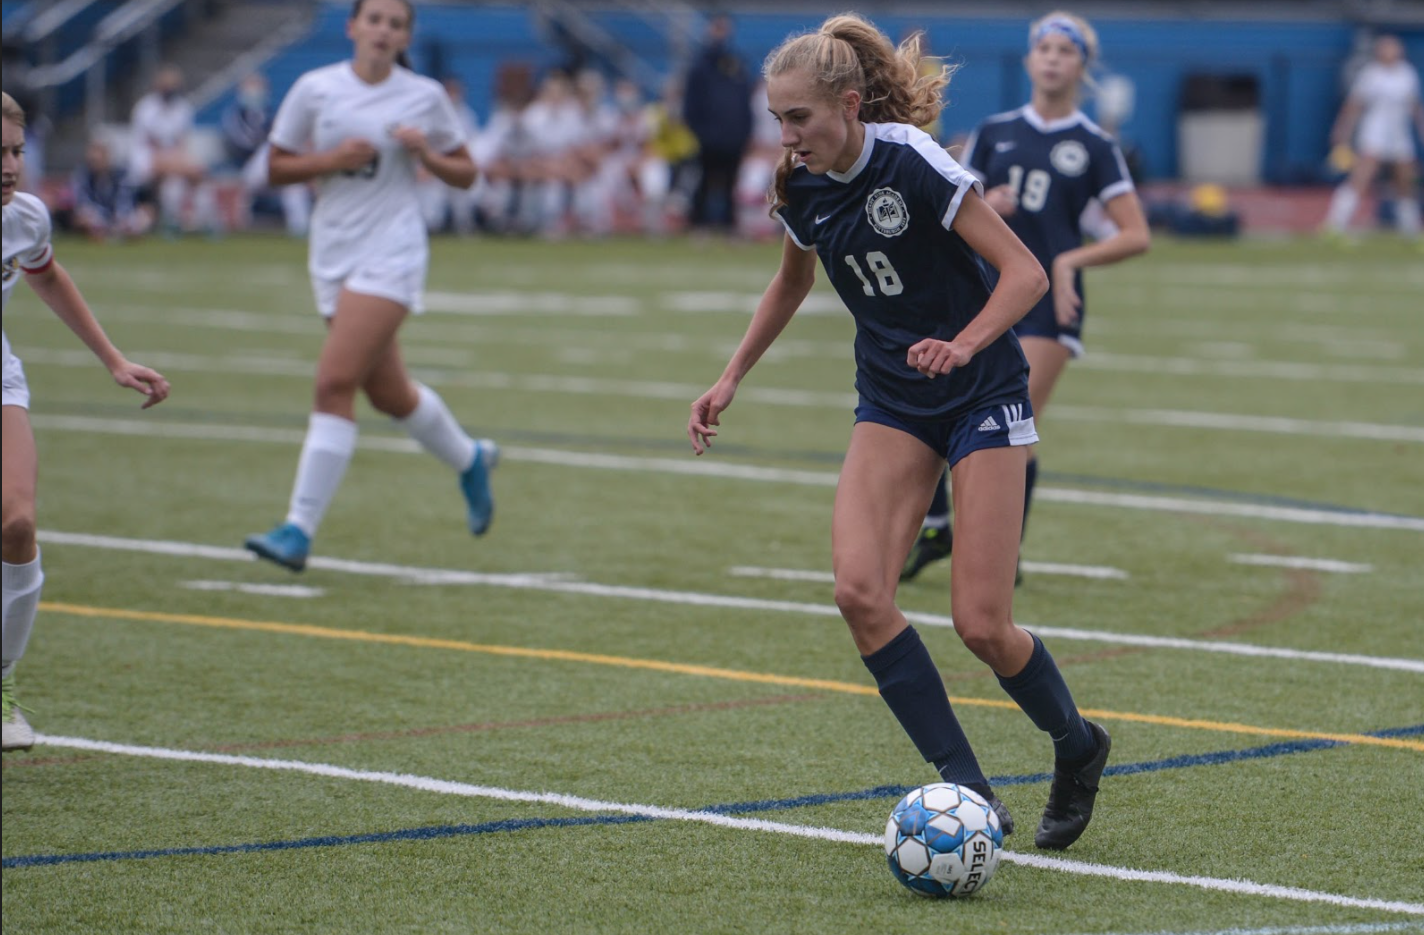 Photo of senior Melissa Riggins playing soccer.